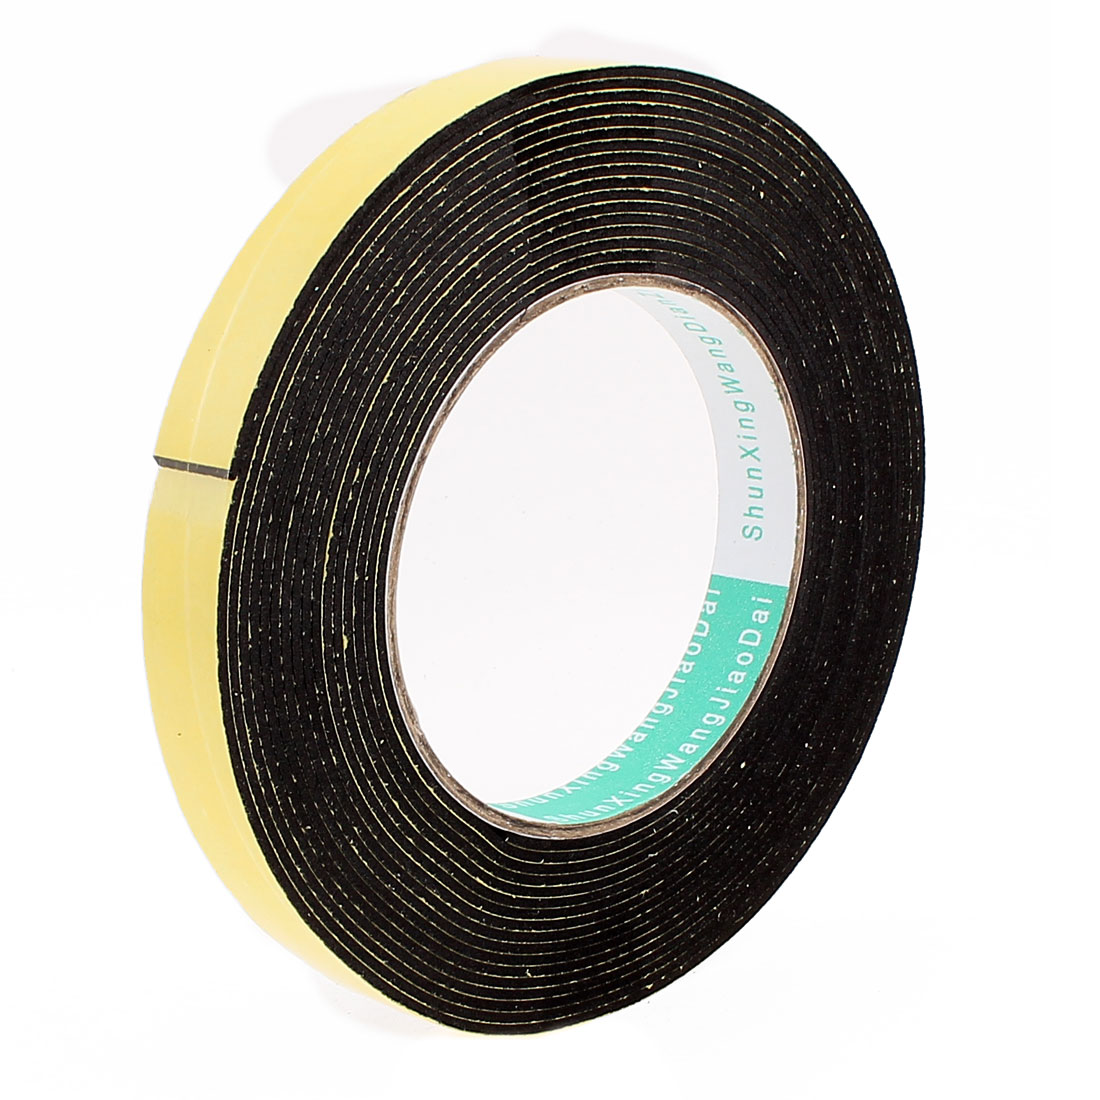 5 Meters 15mm x 1.5mm Single Side Adhesive EVA Foam Sealing Tap